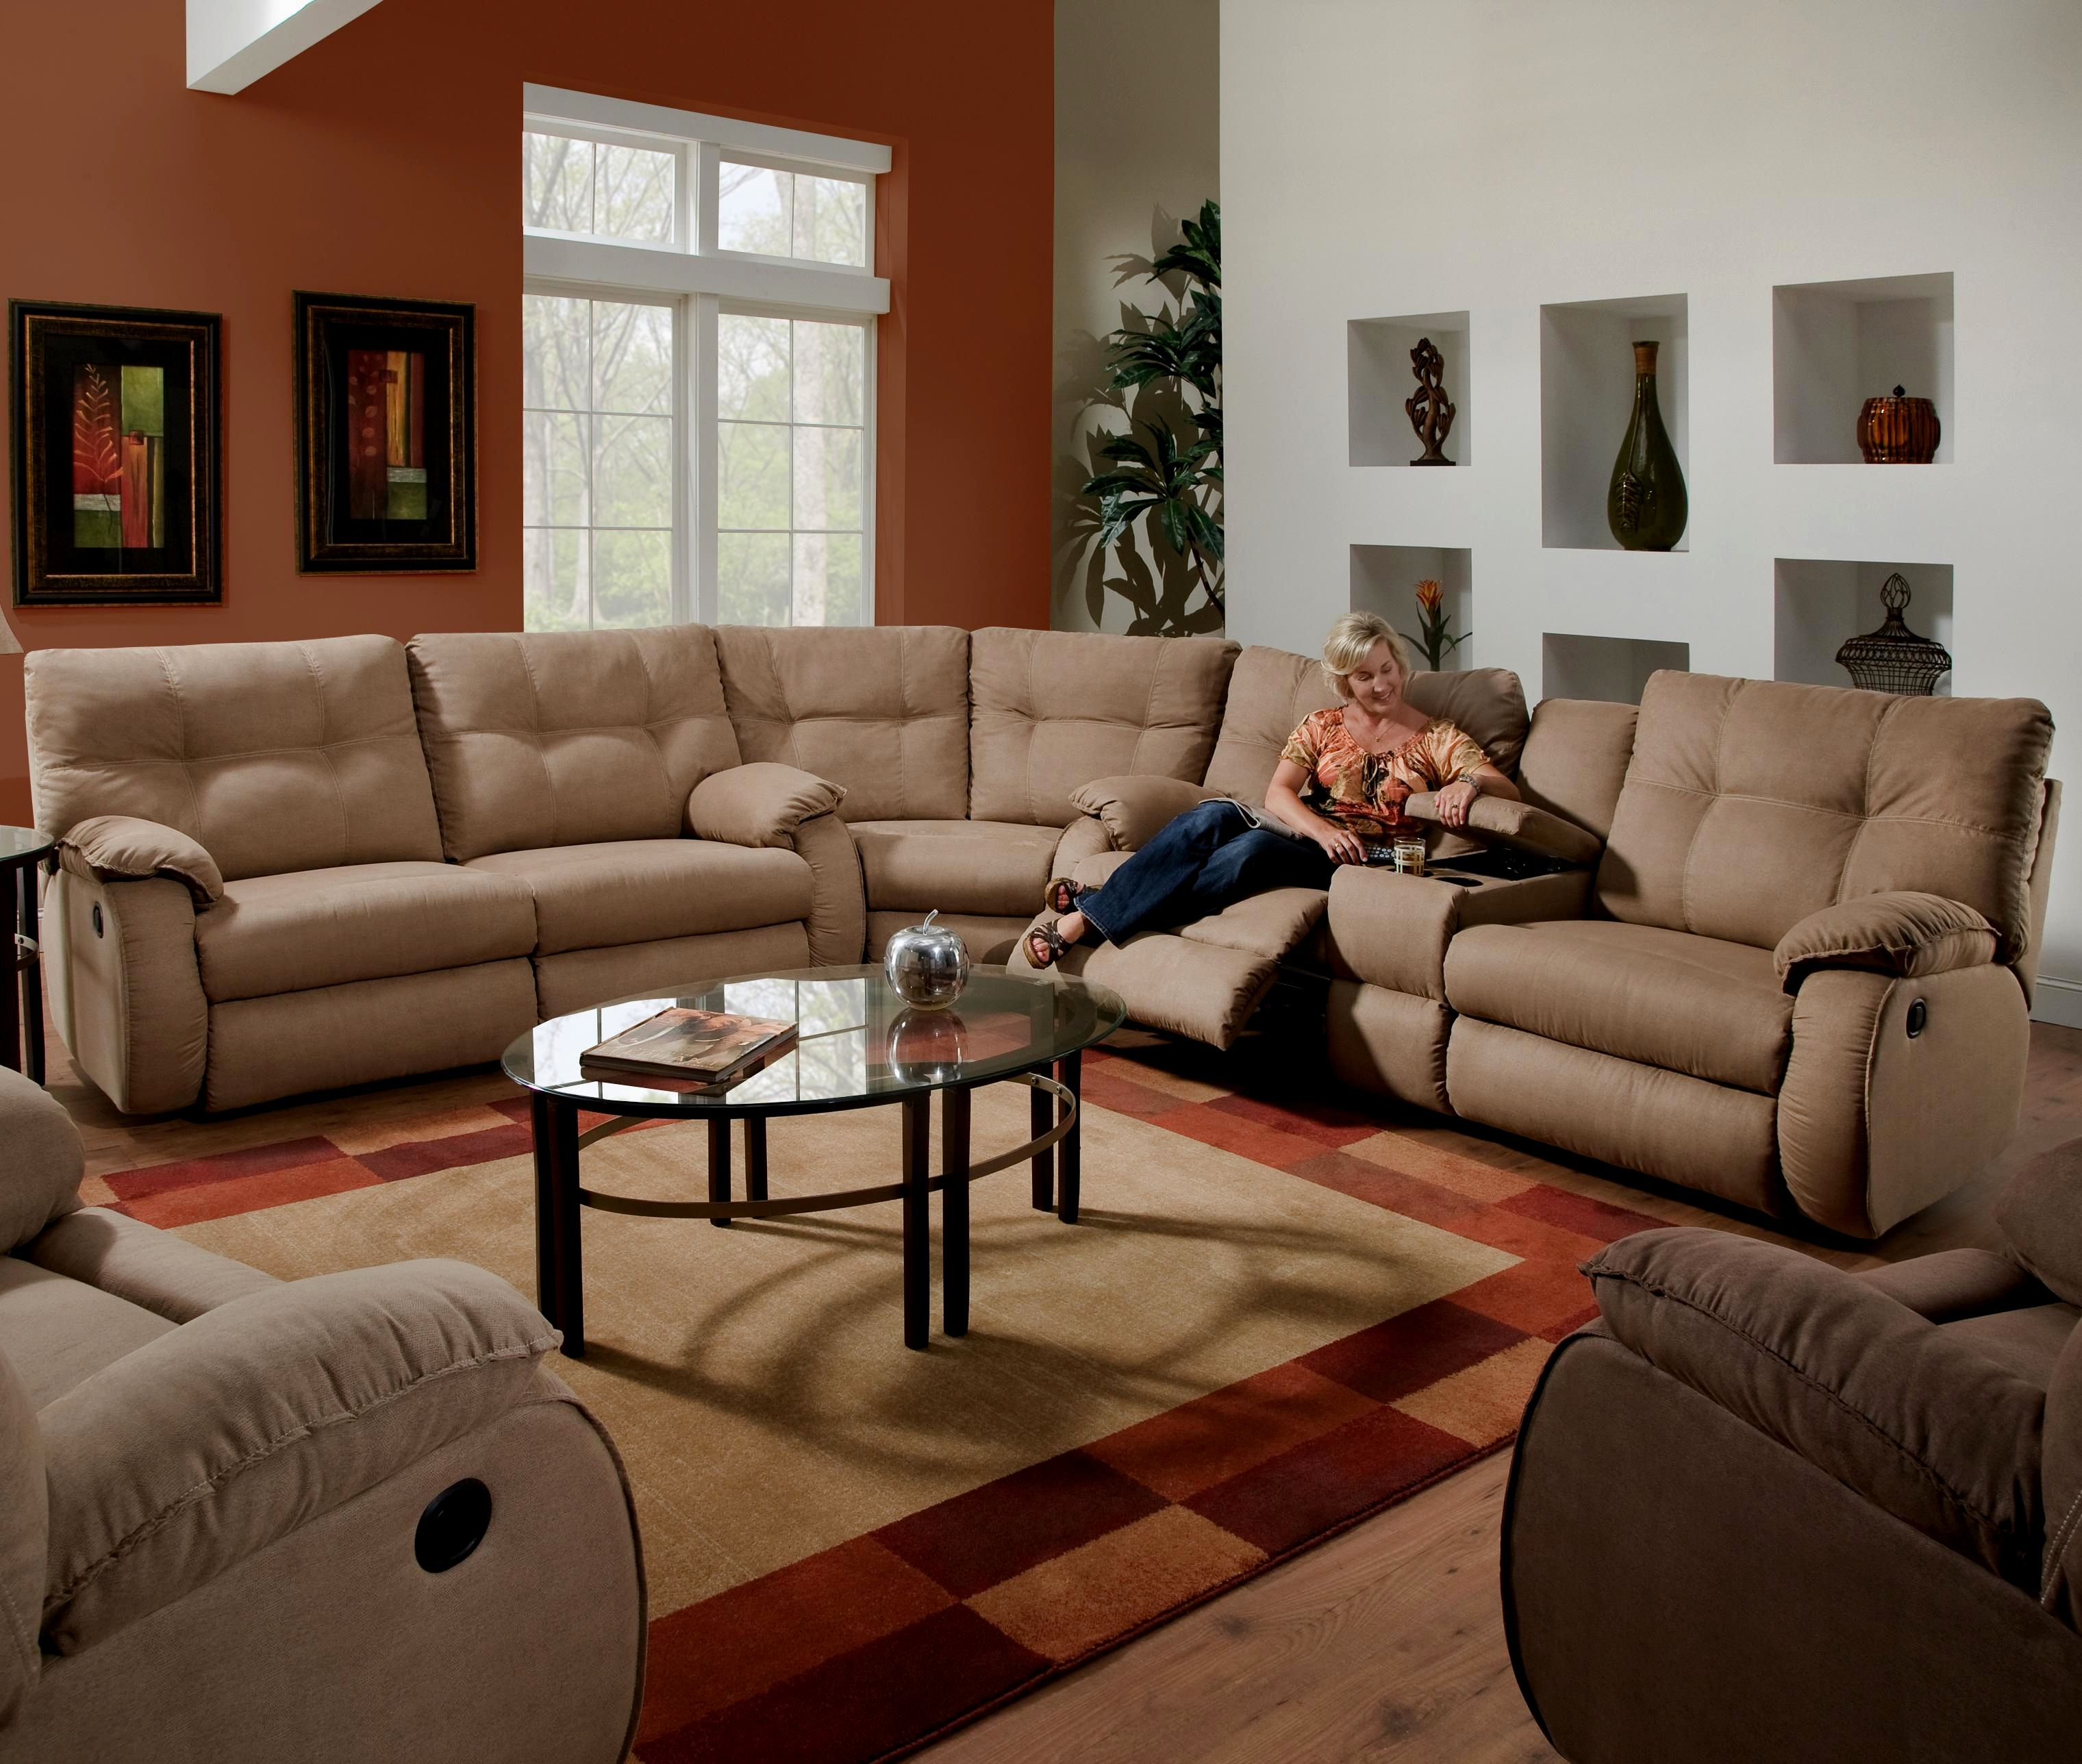 fantastic sofa and recliner image-Best Of sofa and Recliner Photo